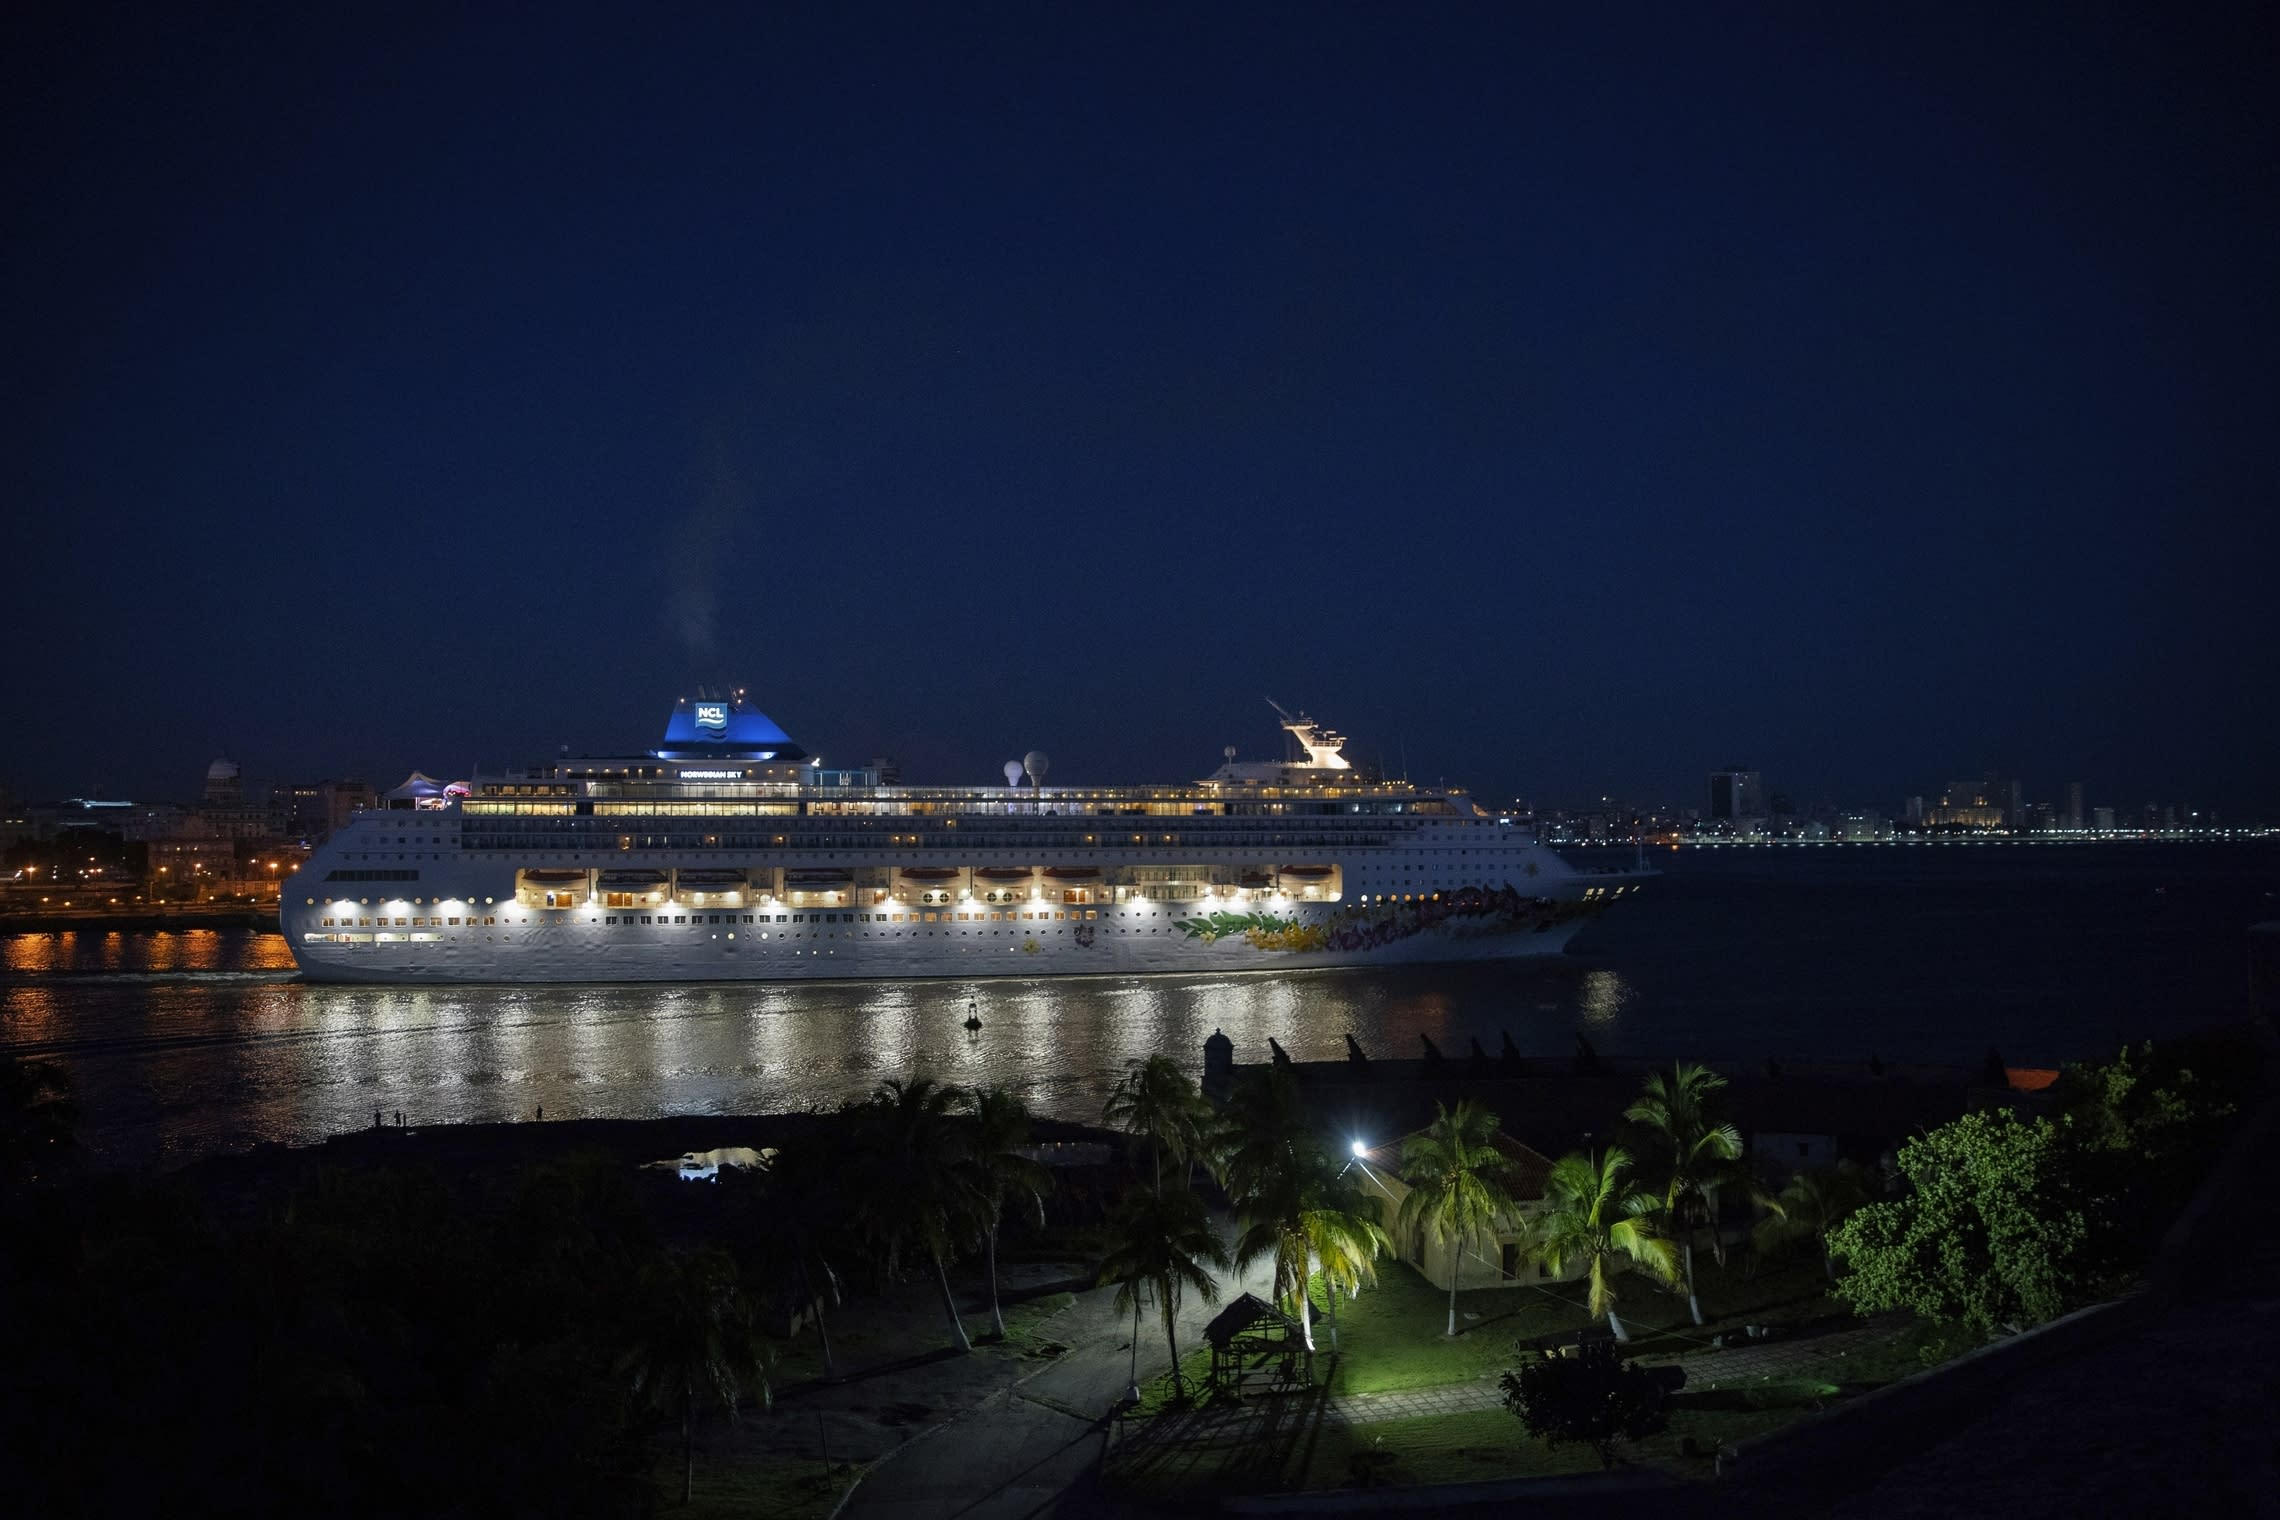 A ship of the Norwegian Cruise Line leaves the bay of Havana at dawn, in Havana, Cuba, Wednesday, June 5, 2019. The Trump administration has imposed major new travel restrictions on visits to Cuba by U.S. citizens, banning stops by cruise ships and ending a heavily used form of educational travel as it seeks to further isolate the communist government. (AP Photo/Ramon Espinosa)